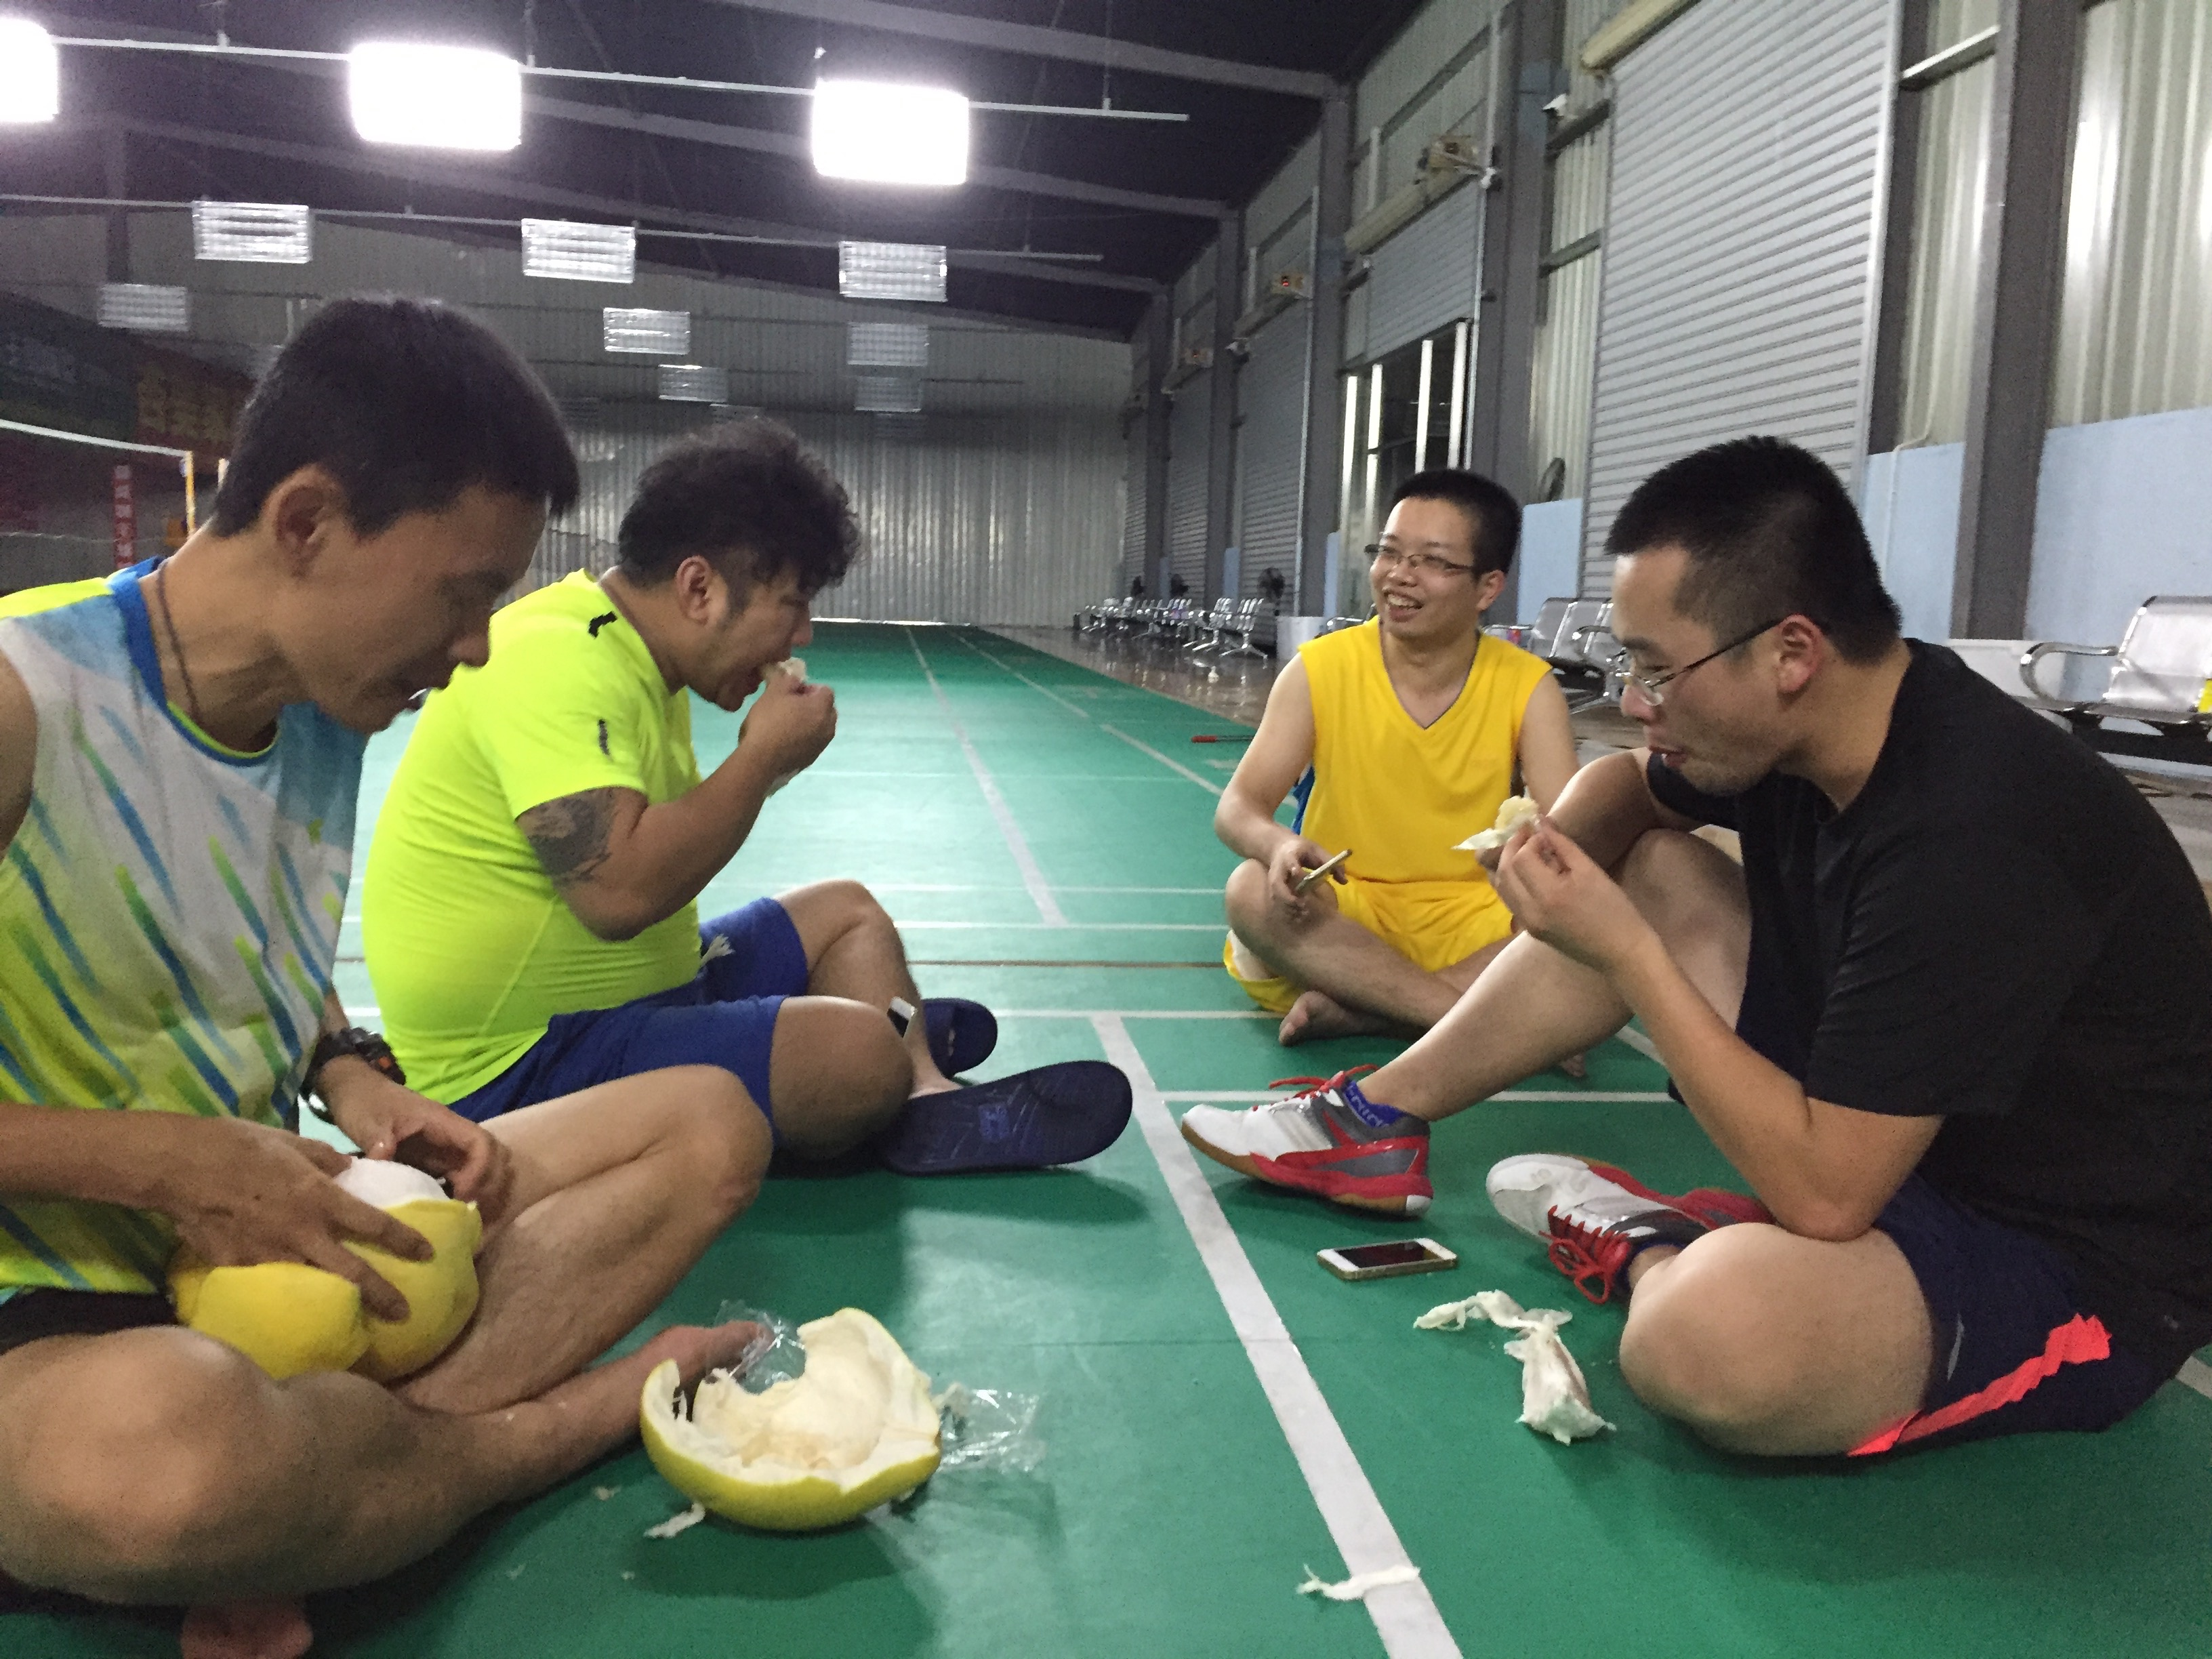 Sometimes we just plunk down right on the court and hang out. My coach brought out some pomelo fruit and proceeded to peel it with his hands. Total bad ass.